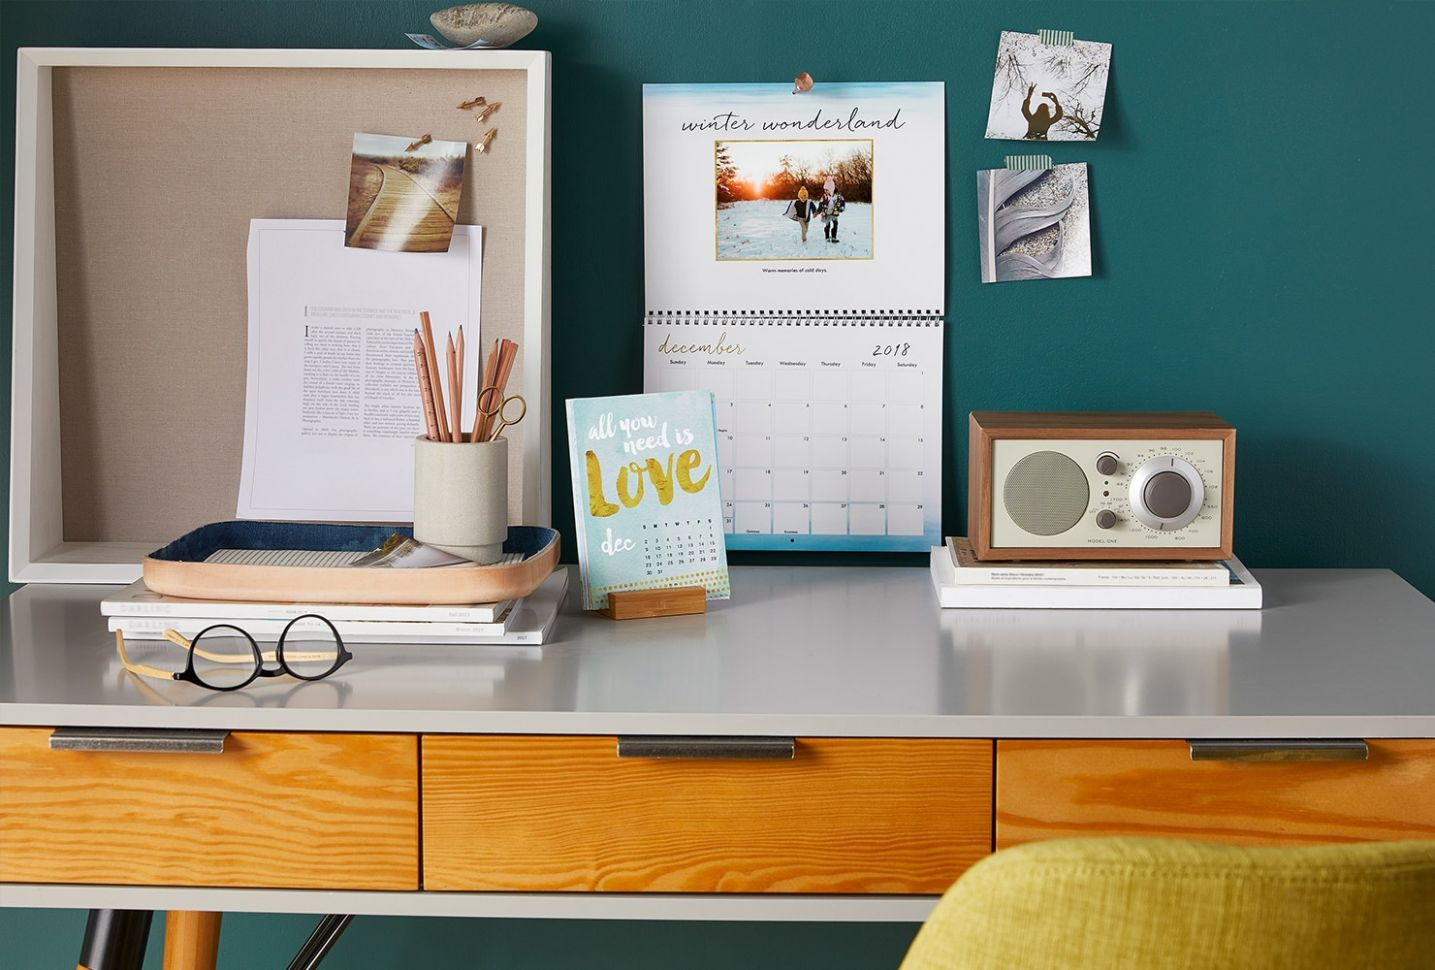 How To Choose The Best Color For Your Home Office | Shutterfly